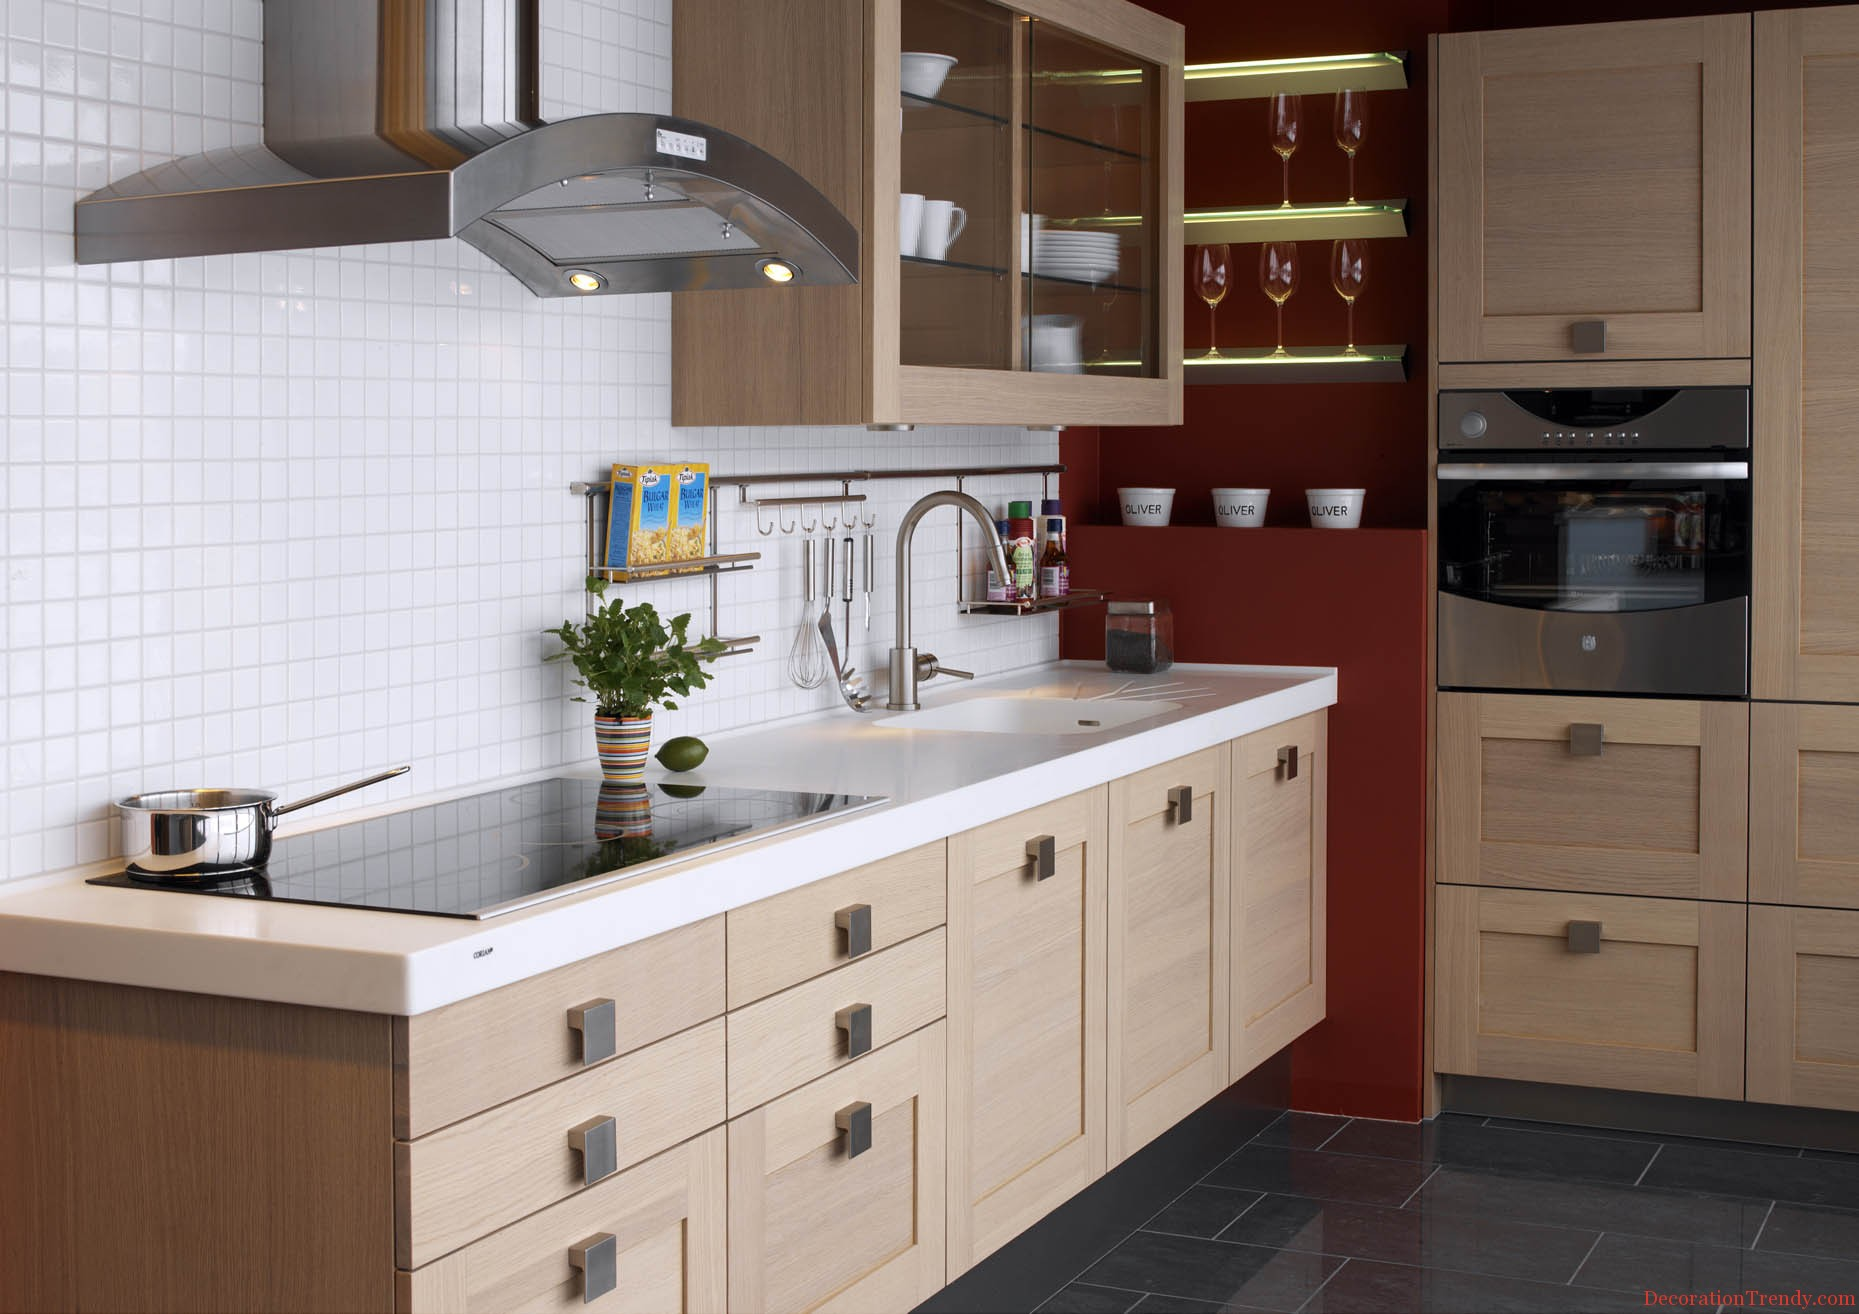 Modern Storage Ideas For Small Kitchens With Light Brown Color And White Backsplash